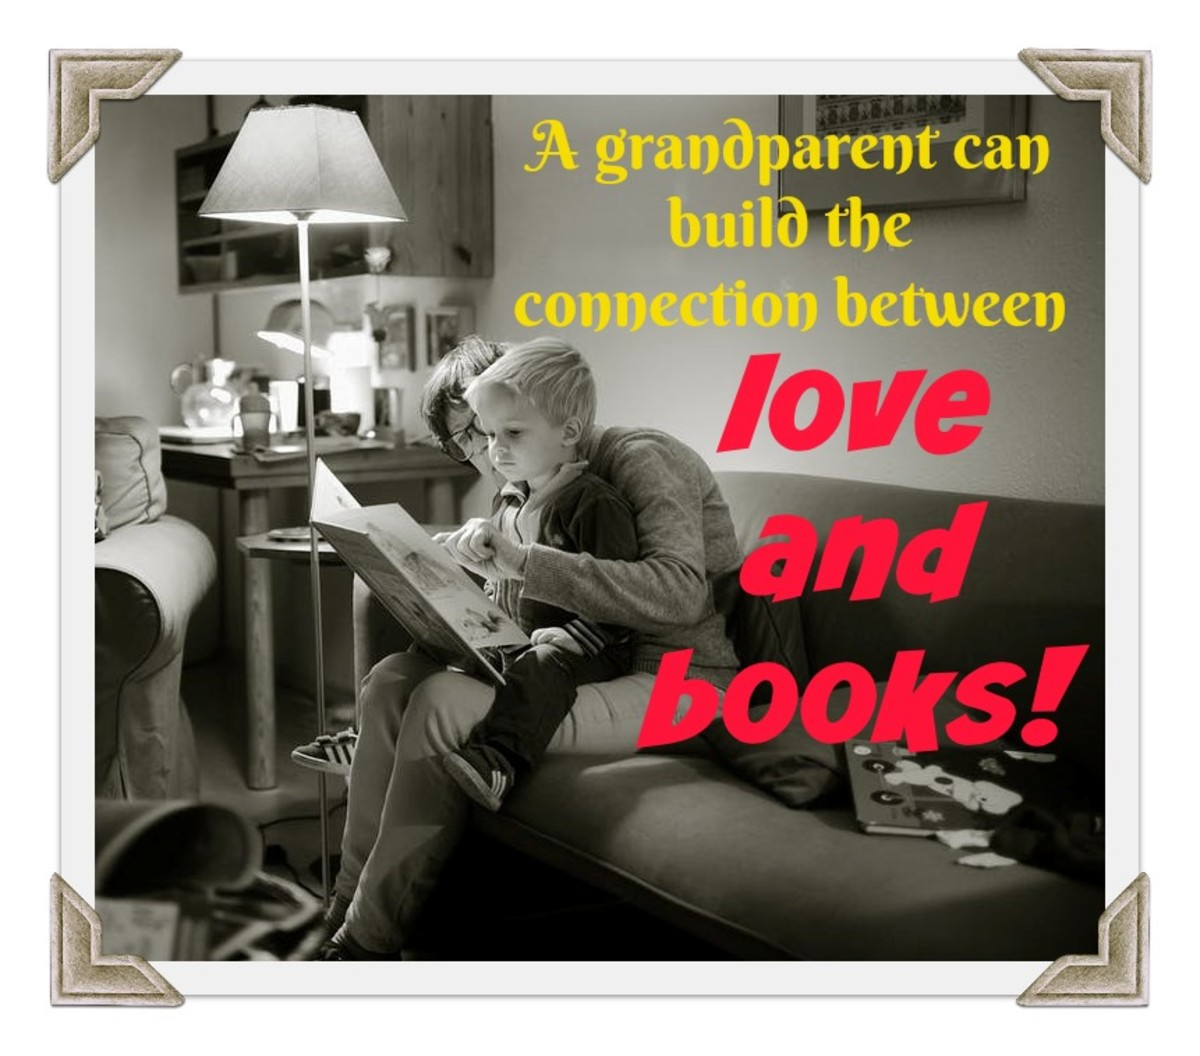 These moments between grandparent and grandchild — connecting reading with love, warmth, and affection — are what create a lifelong lover of books.